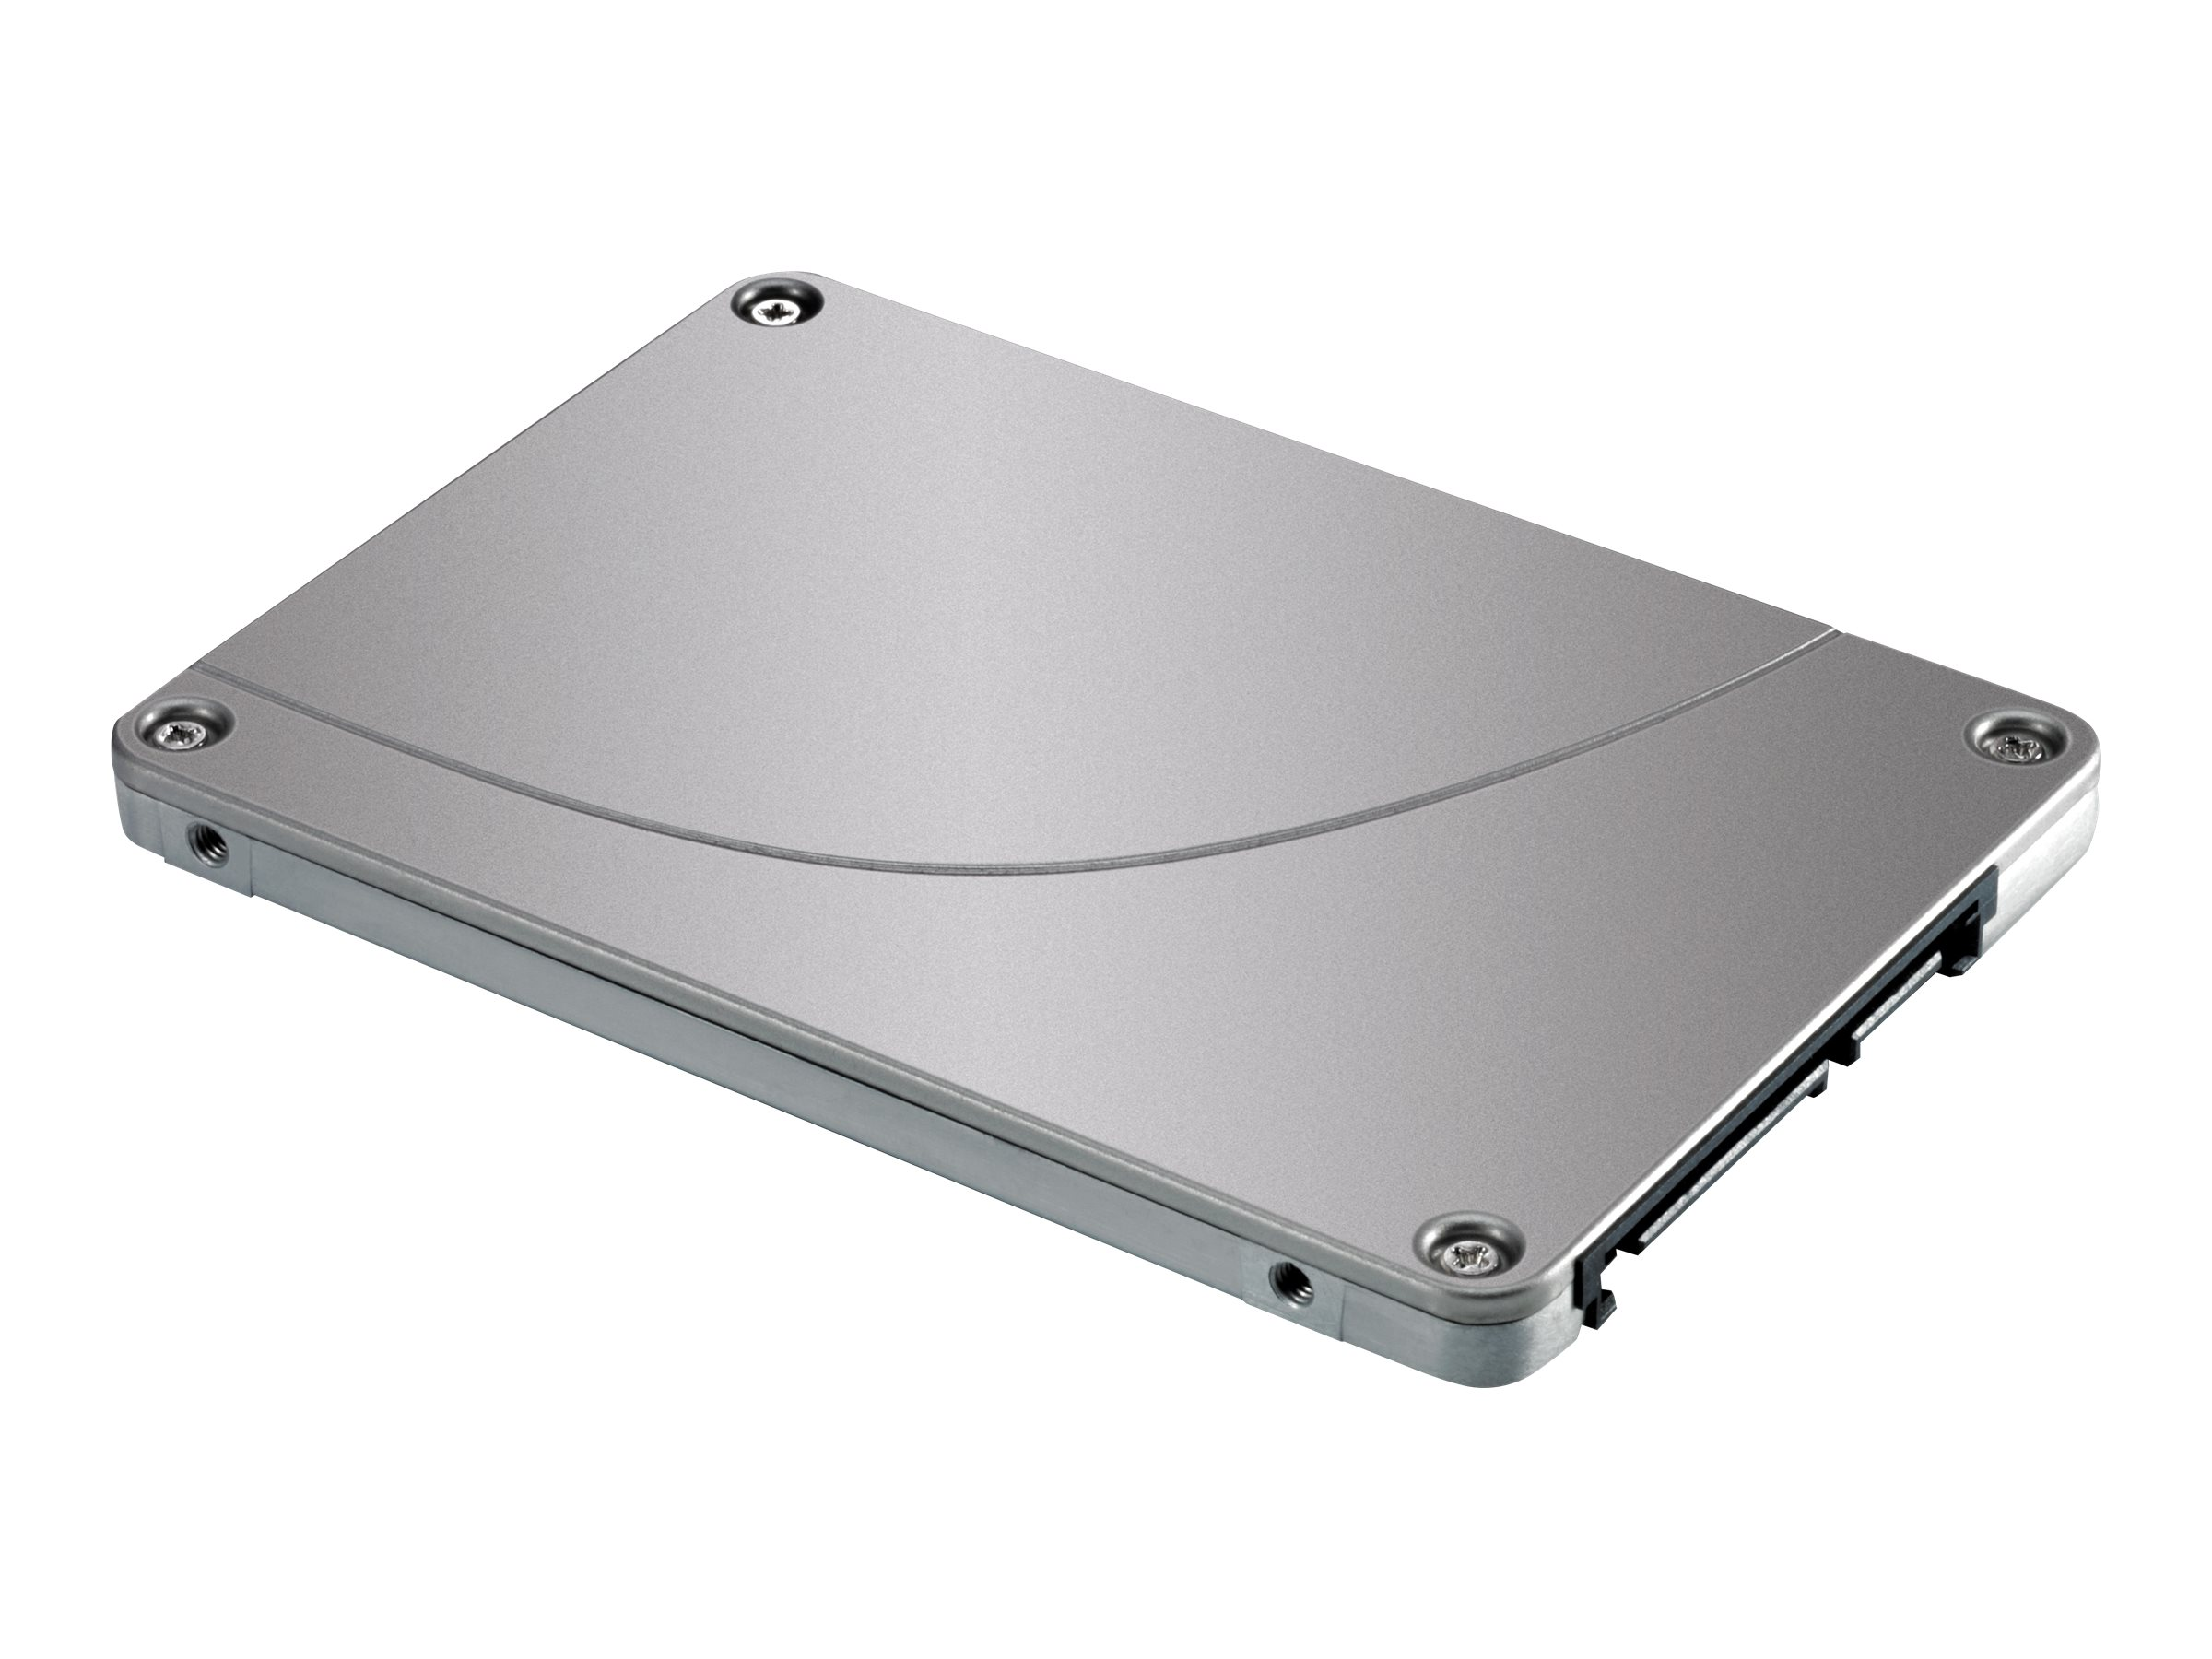 HP - solid state drive - 512 GB - SATA 6Gb/s